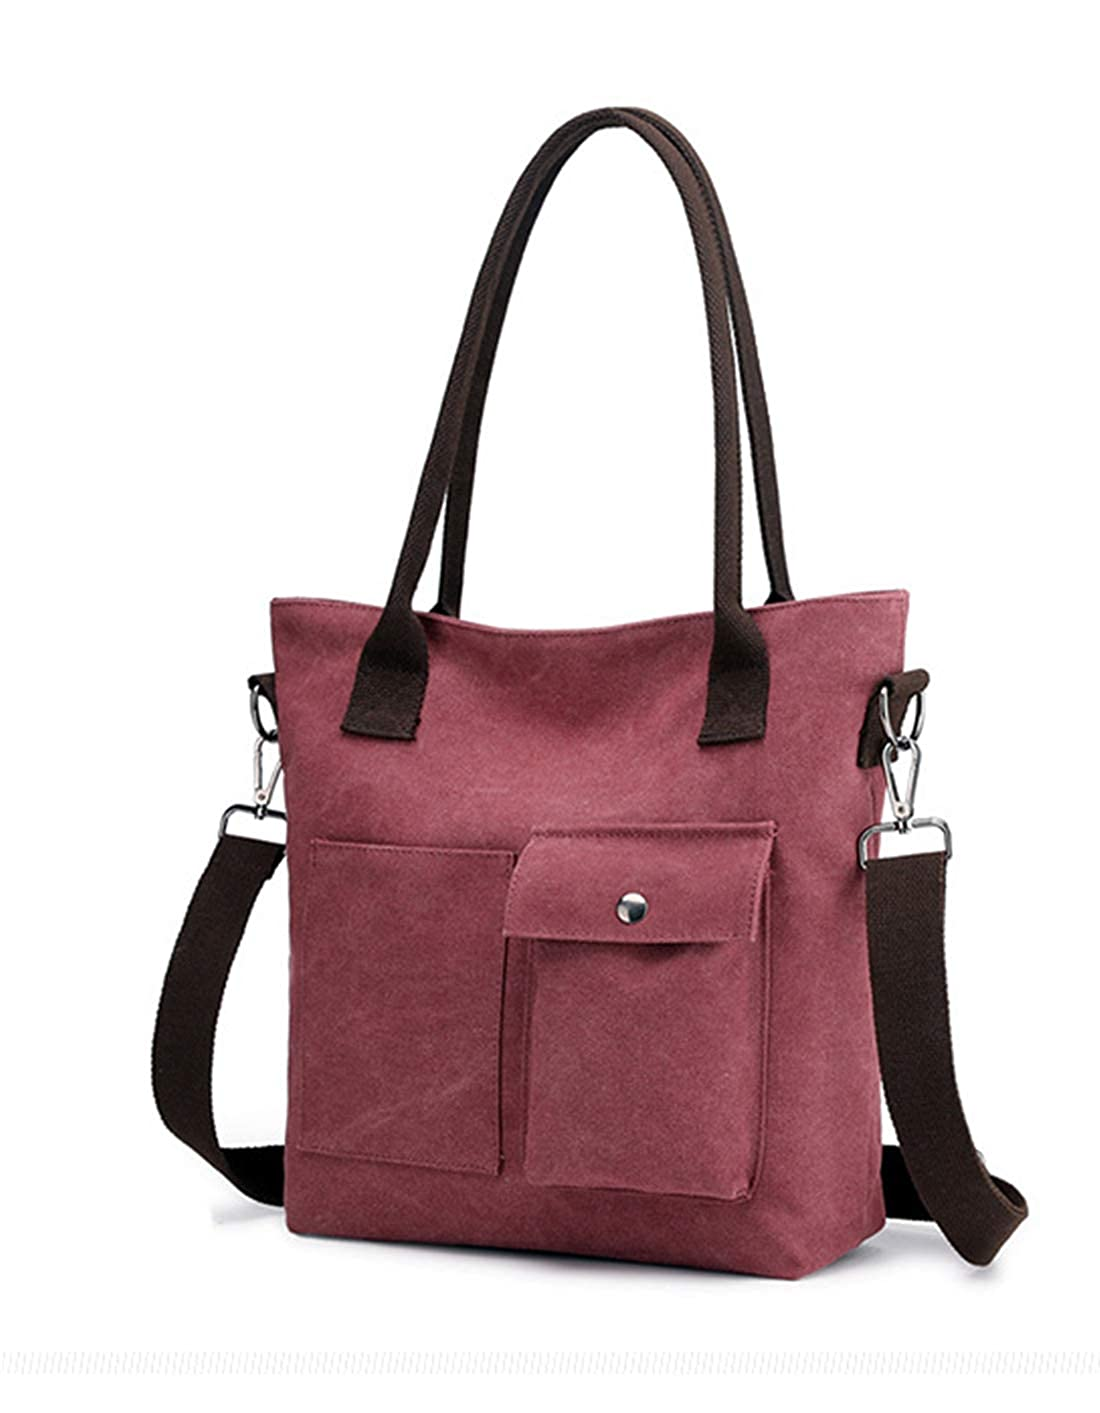 1519purple Coffee Women's Large Capacity Canvas Bag Tote Bag Handbag Convenient Hobo Bag (15191520)